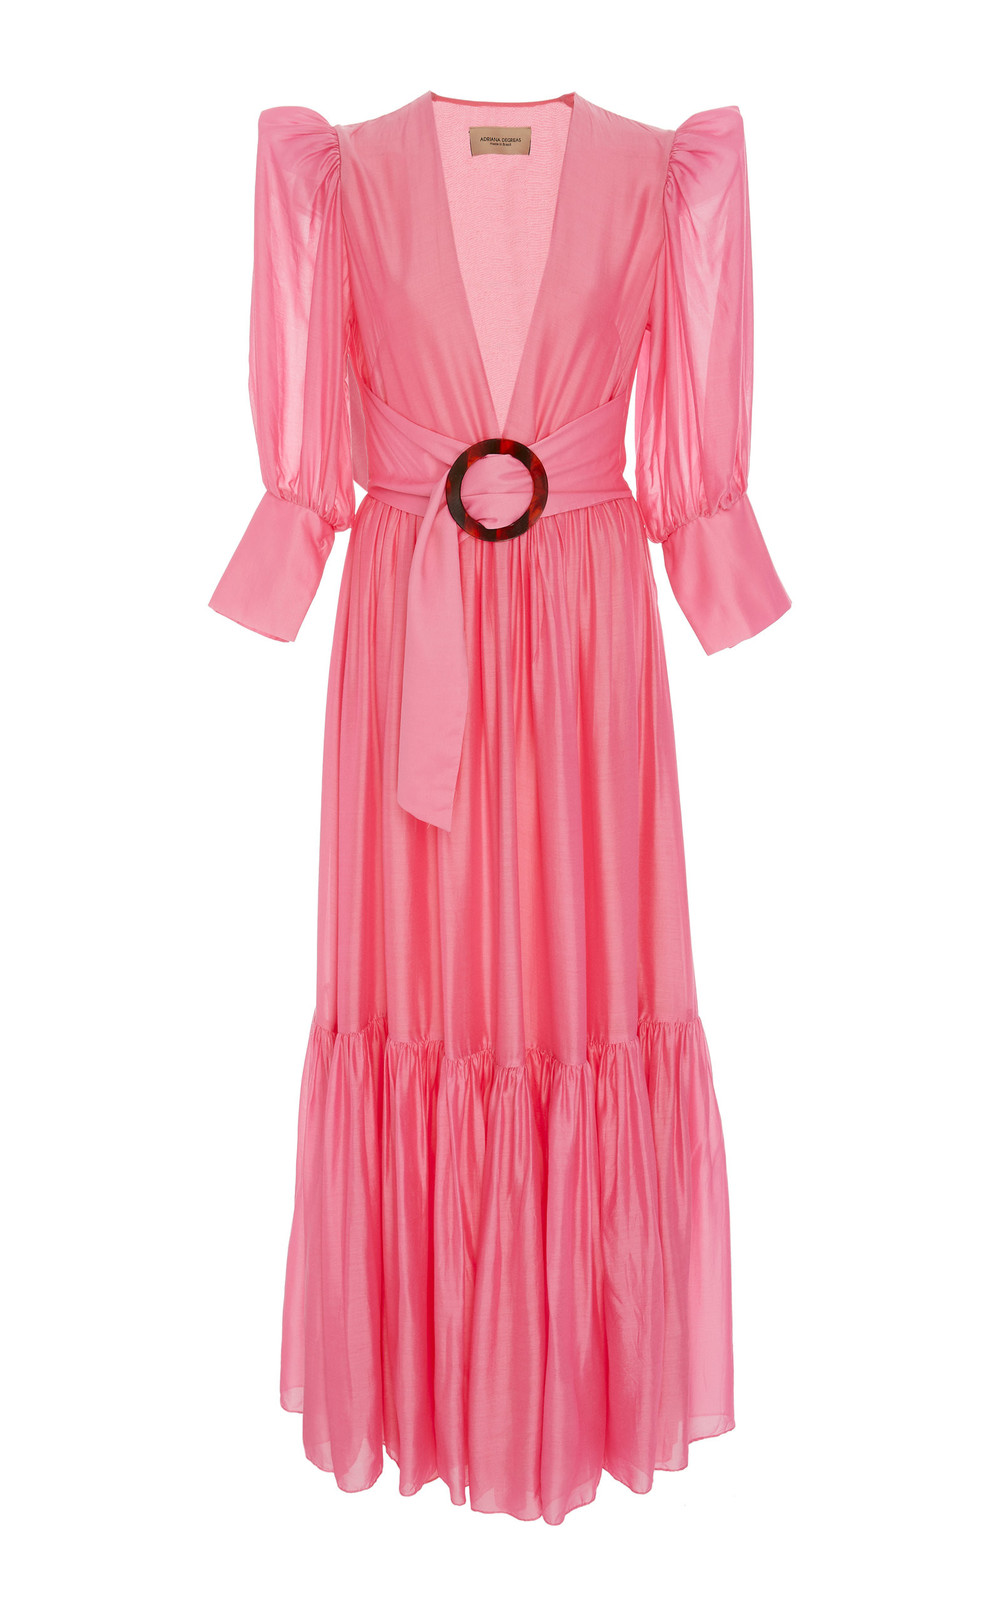 Adriana Degreas Puff-Sleeve Maxi Dress in pink